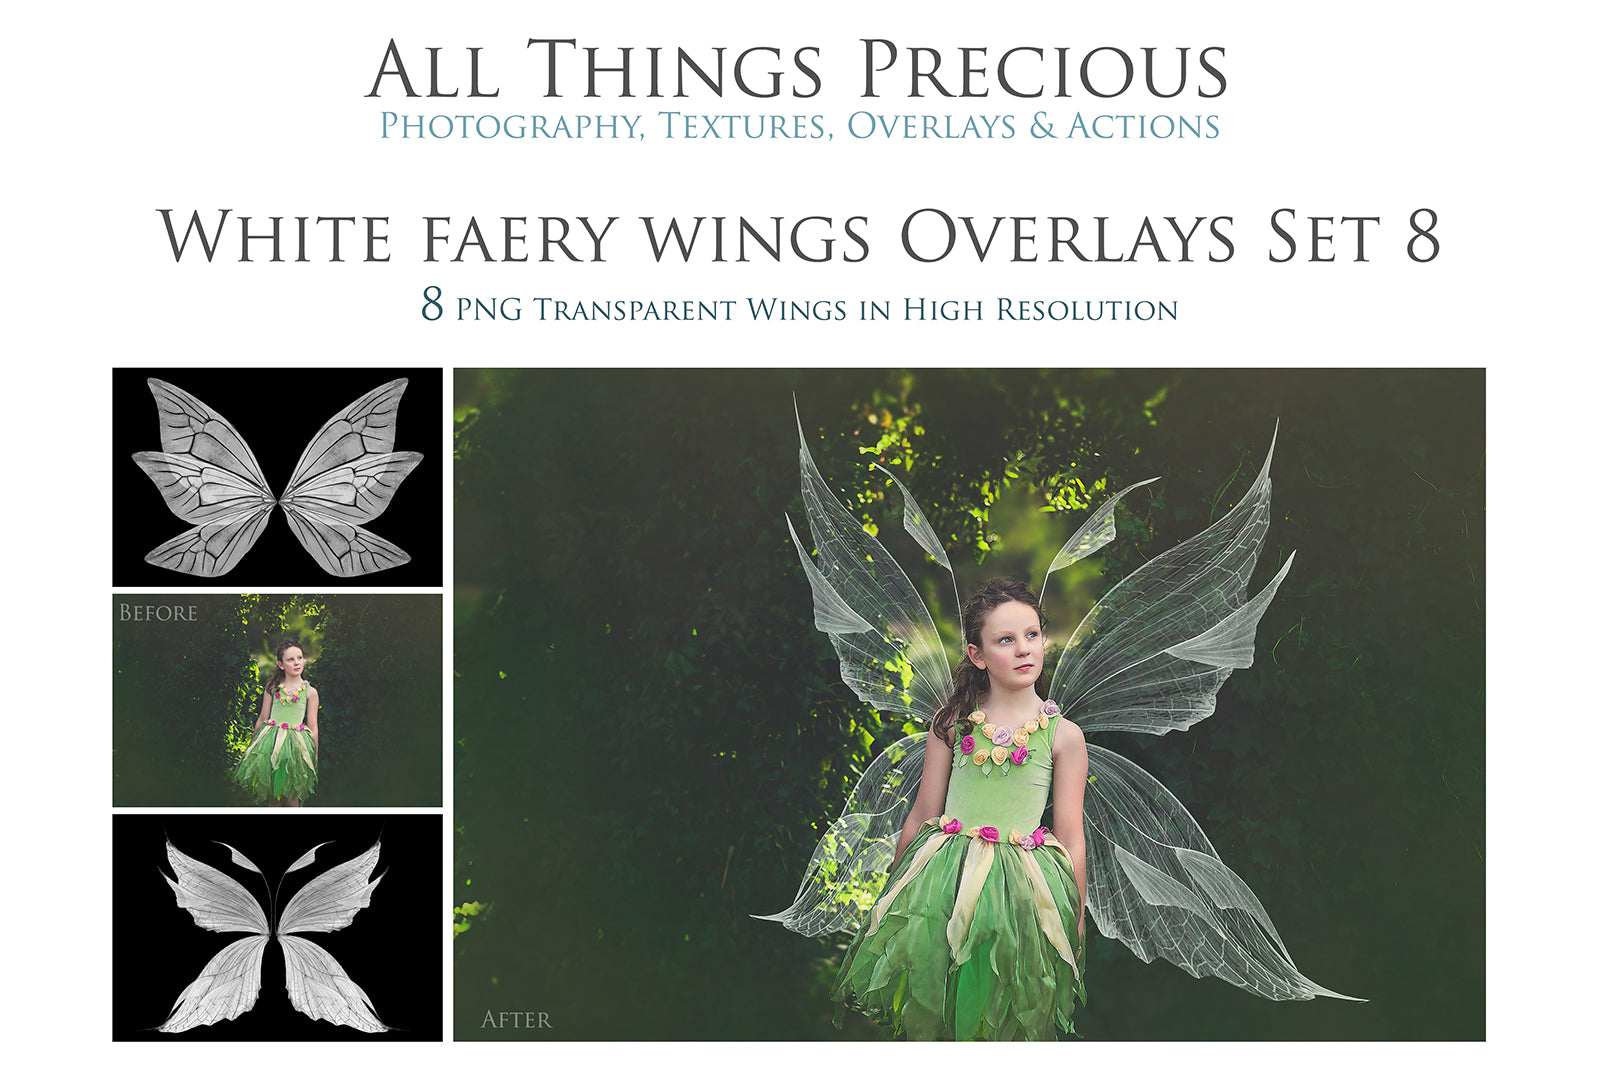 8 Png WHITE FAIRY WING Overlays Set 8